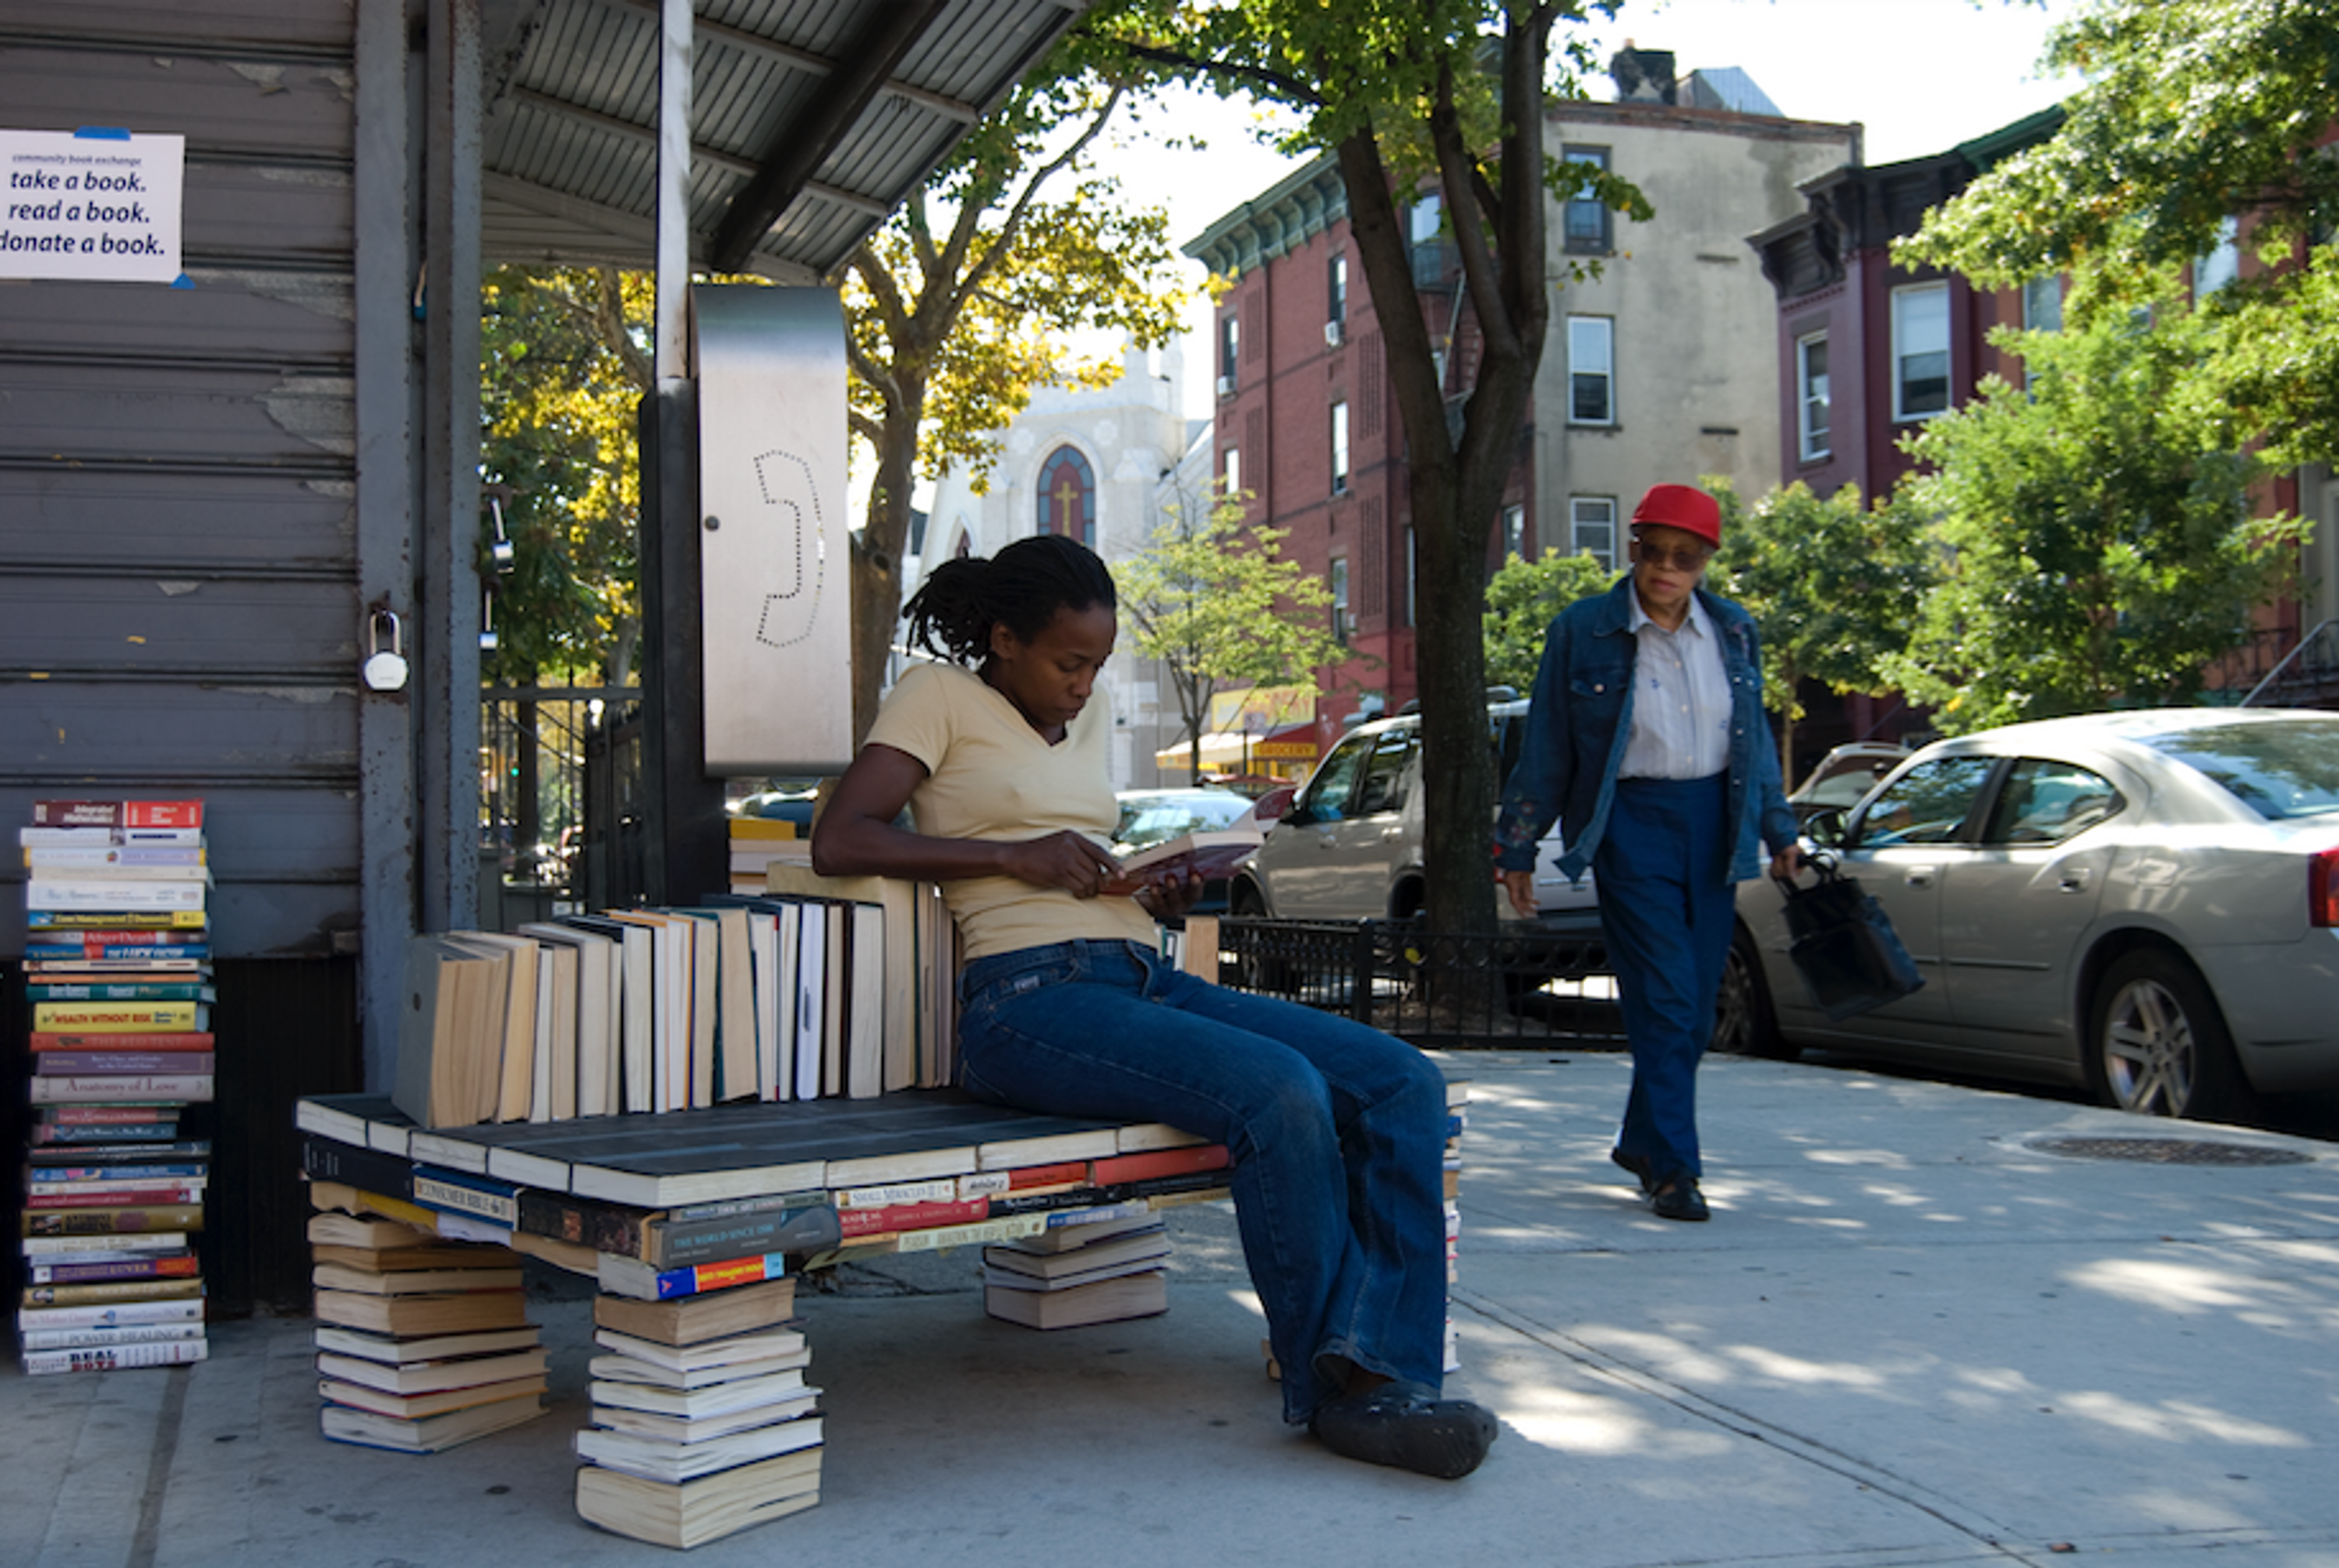 Stephanie Dinkins, The Book Bench Project, 2007